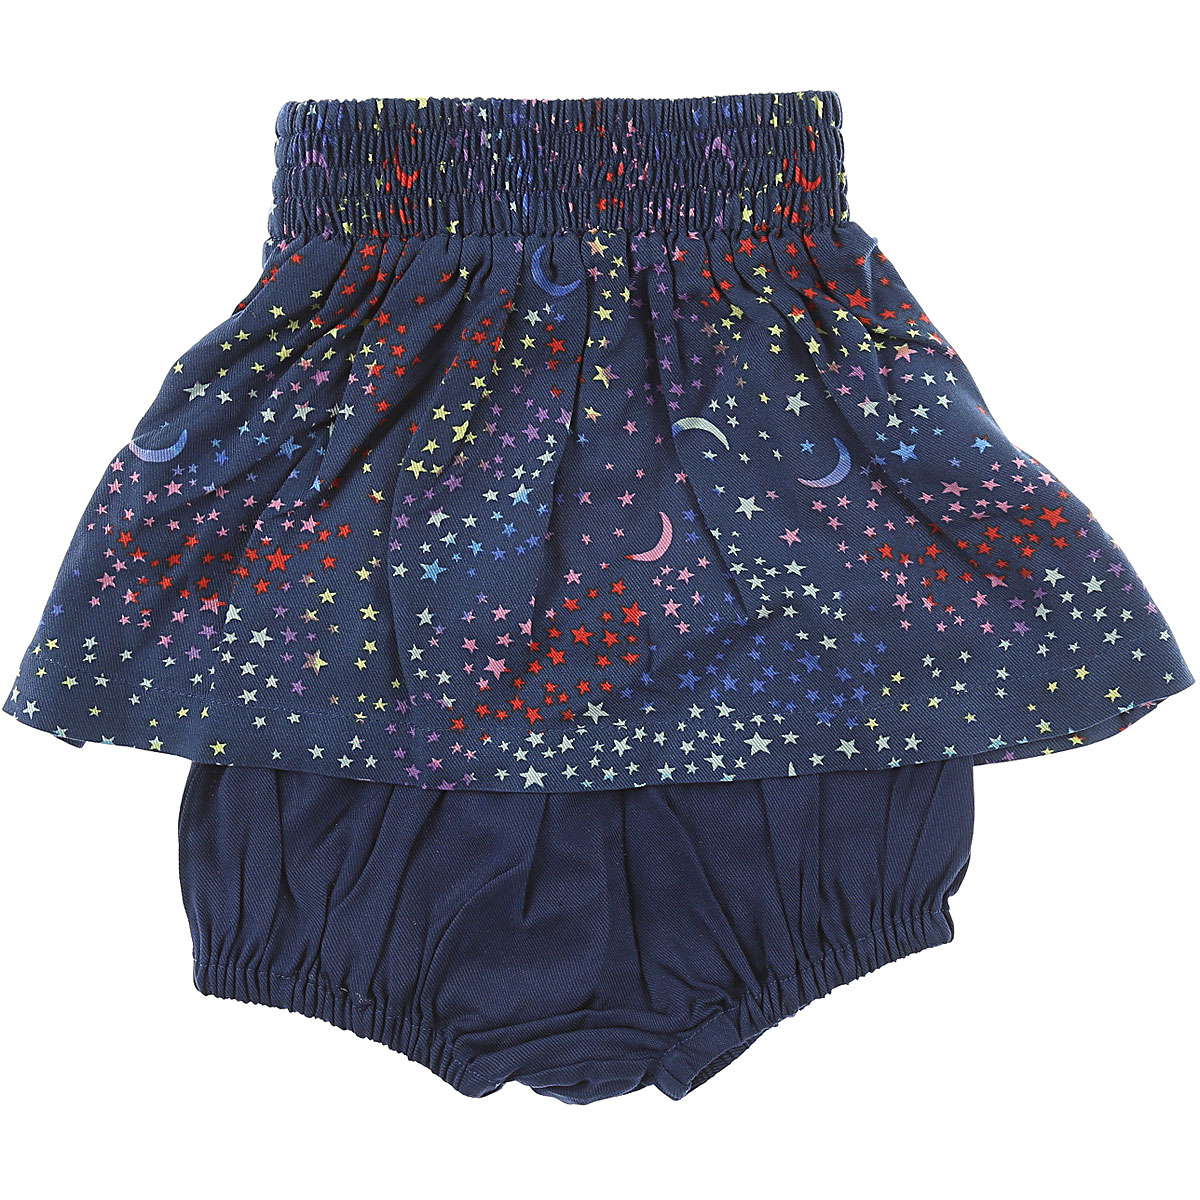 Image of Stella McCartney Baby Skirts for Girls, Blue, viscosa, 2017, 12M 18M 2Y 3M 3Y 6M 9M